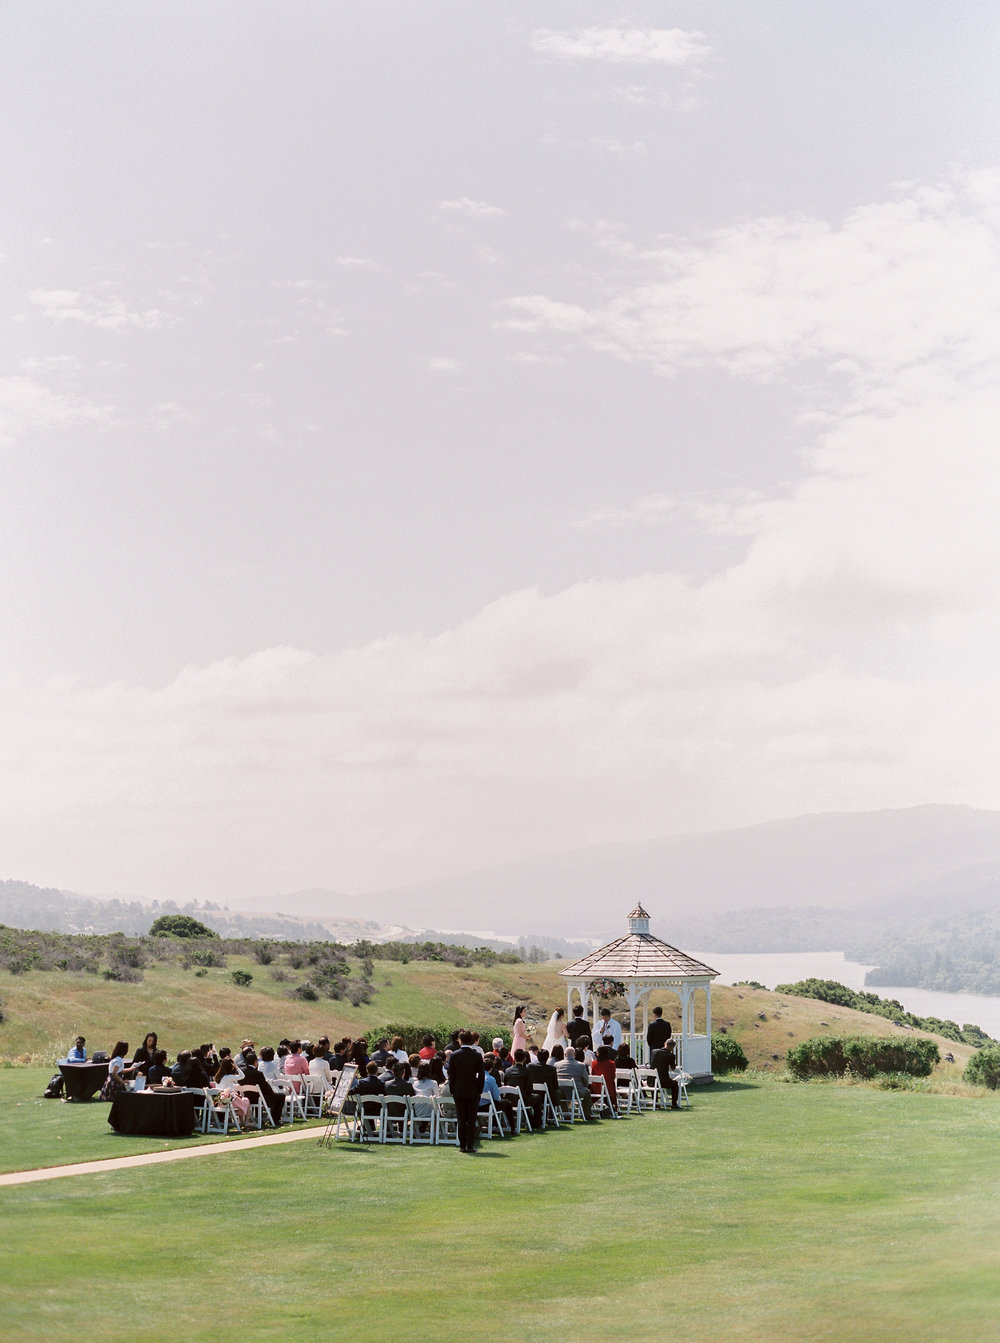 mountaintop-wedding-at-crystal-springs-burlingame-california-48.jpg